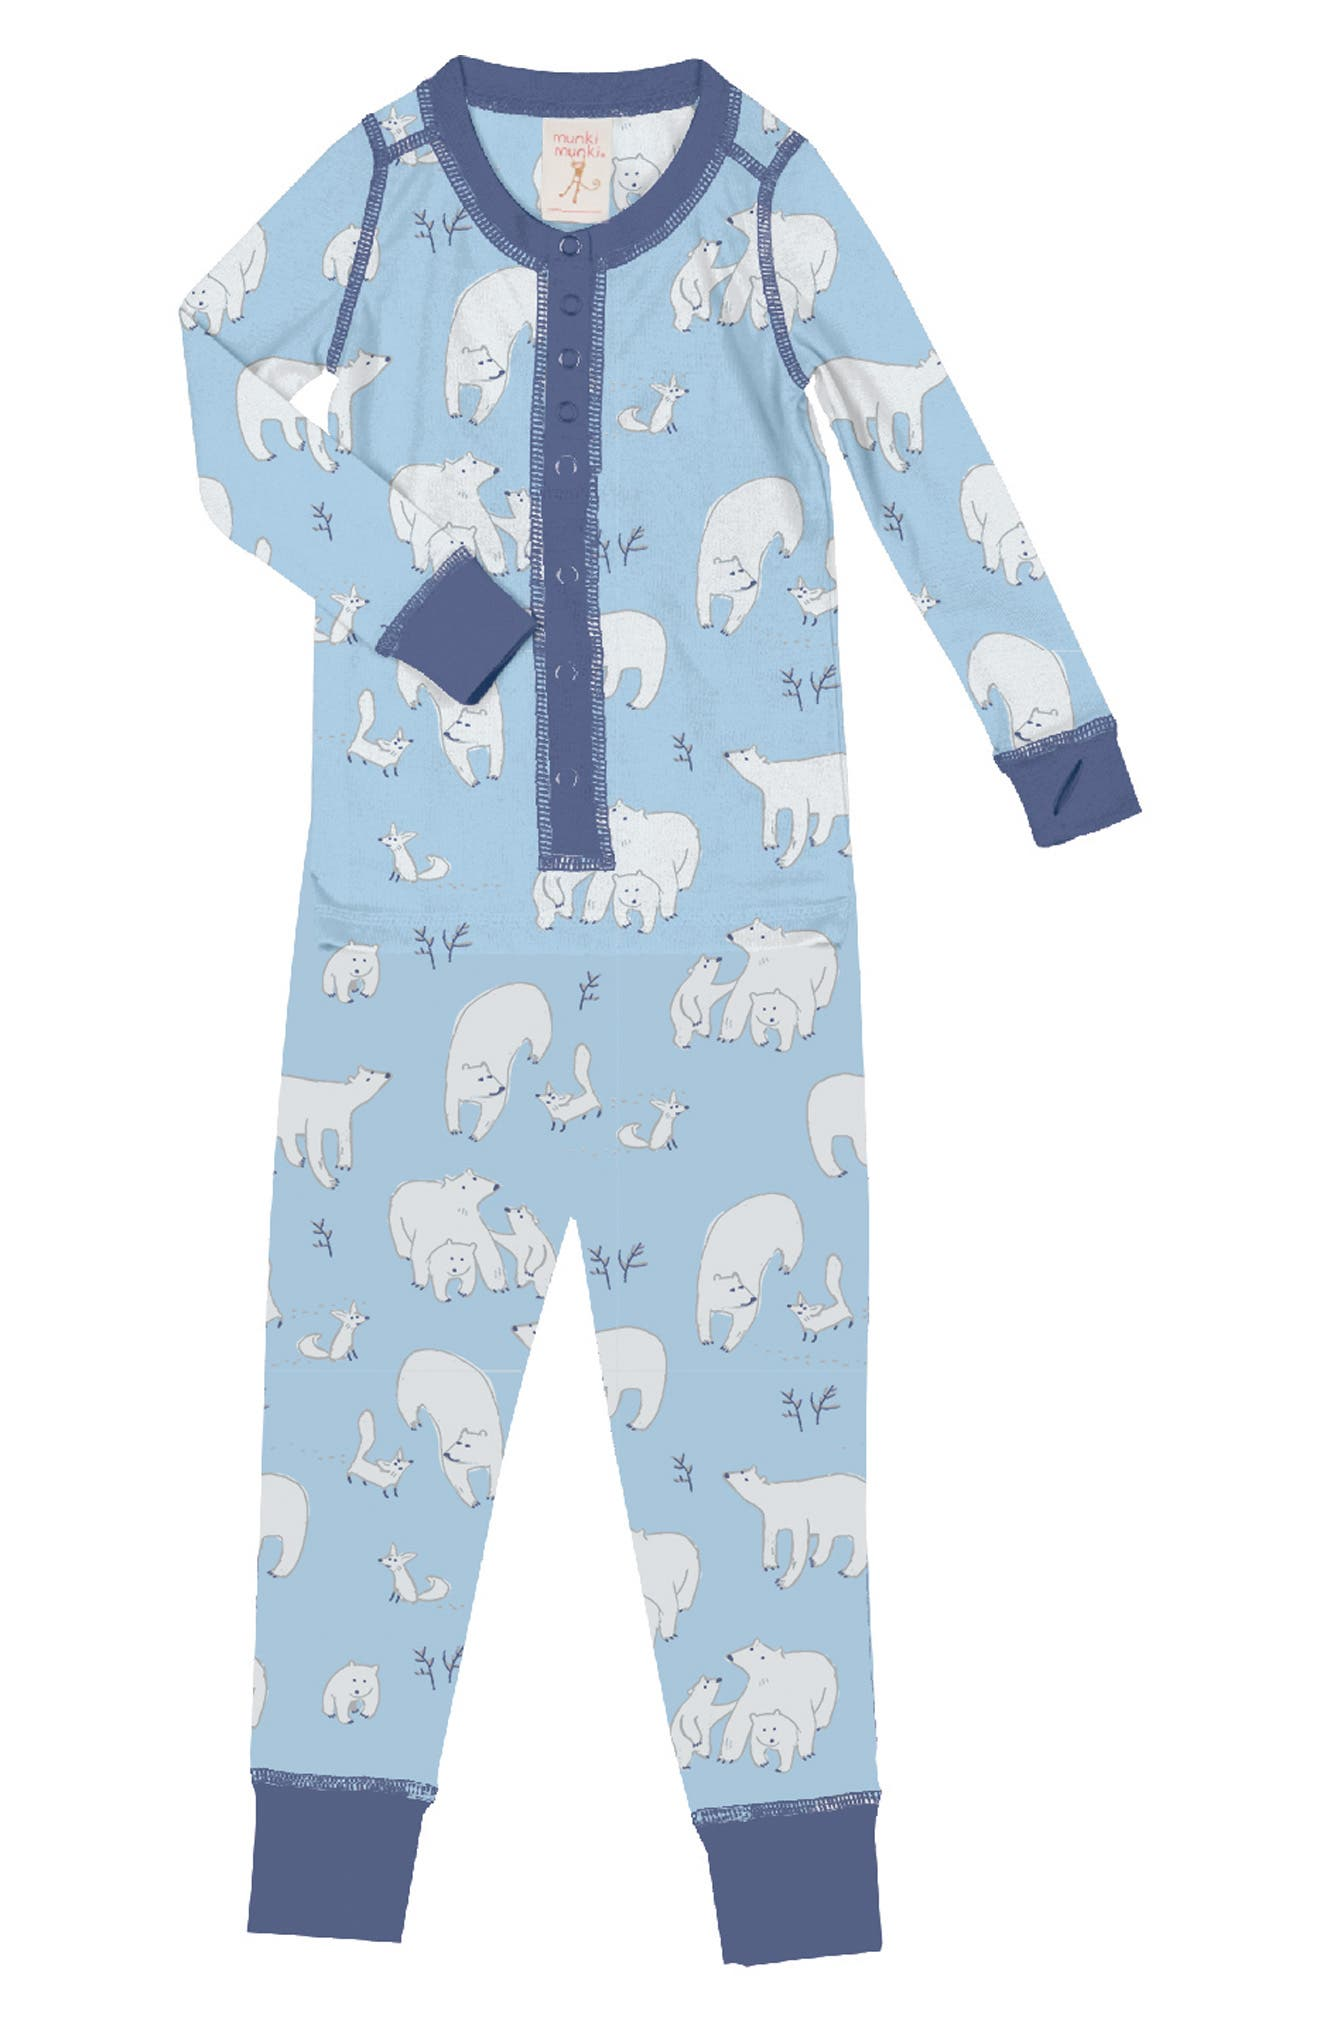 Polar Bears Fitted One-Piece Pajamas,                             Main thumbnail 1, color,                             BLUE